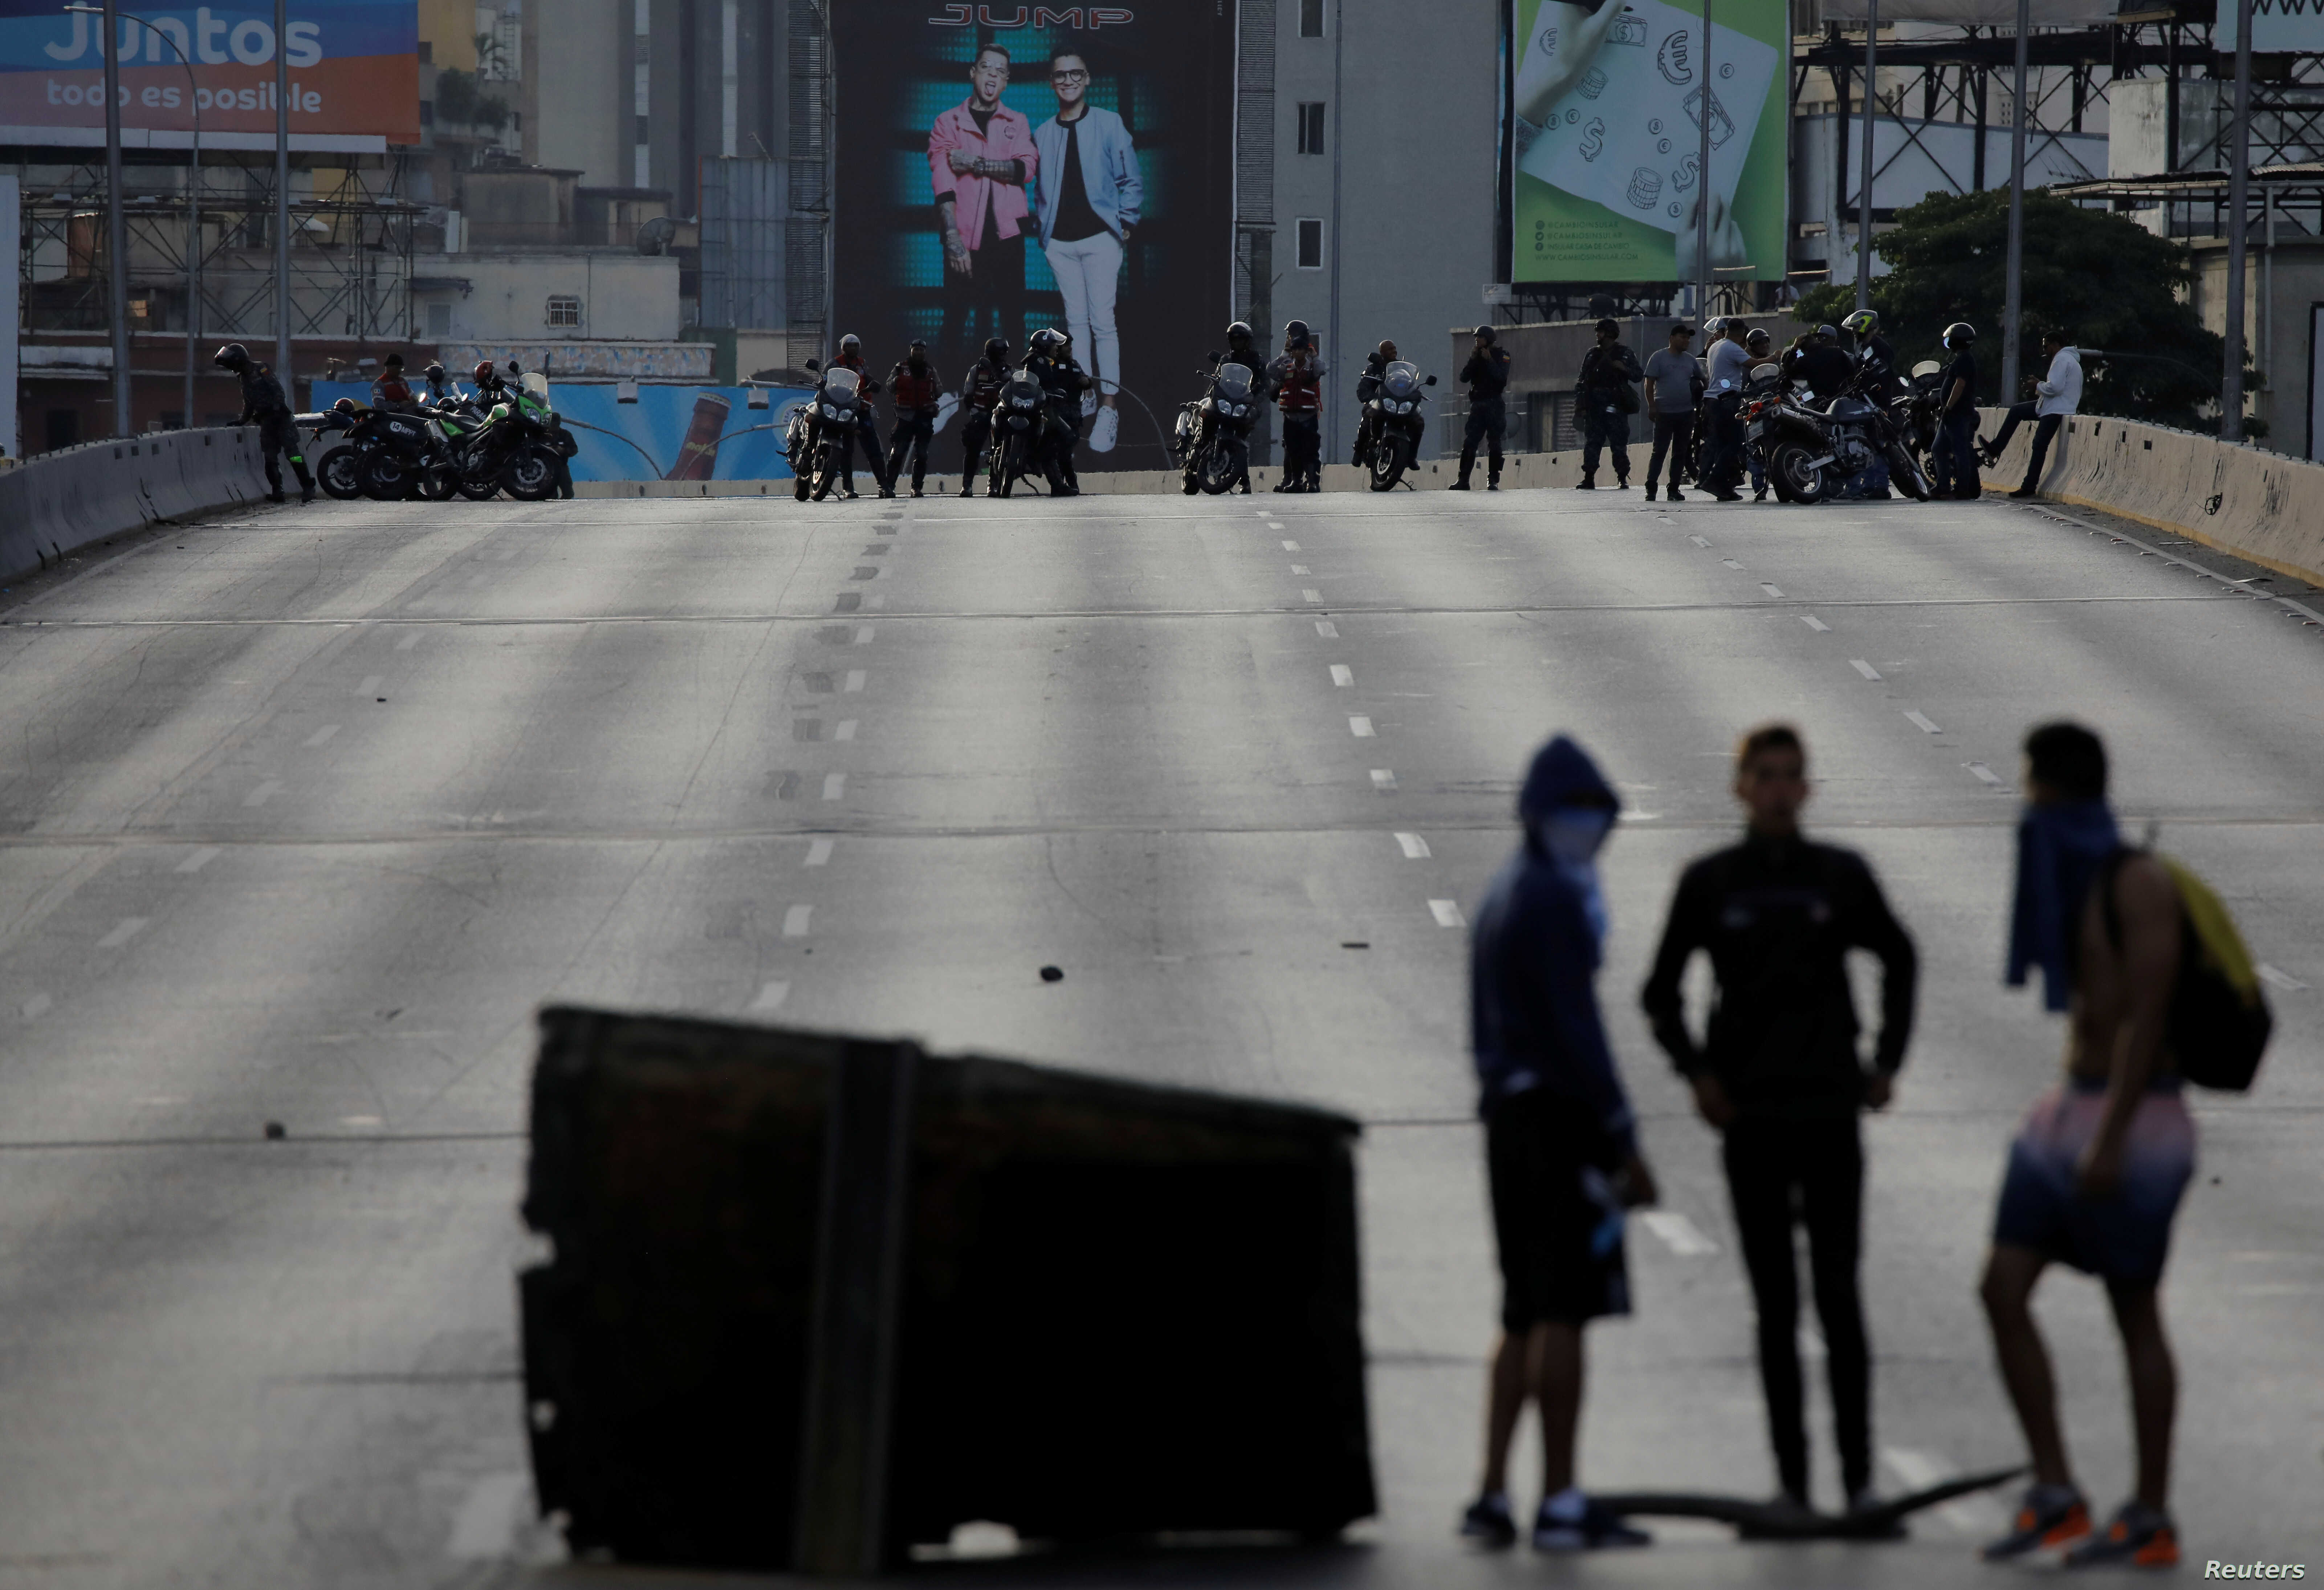 Demonstrators are seen with the security forces behind them during a protest against Venezuelan President Nicolas Maduro's government in Caracas, Venezuela, Feb. 2, 2019.